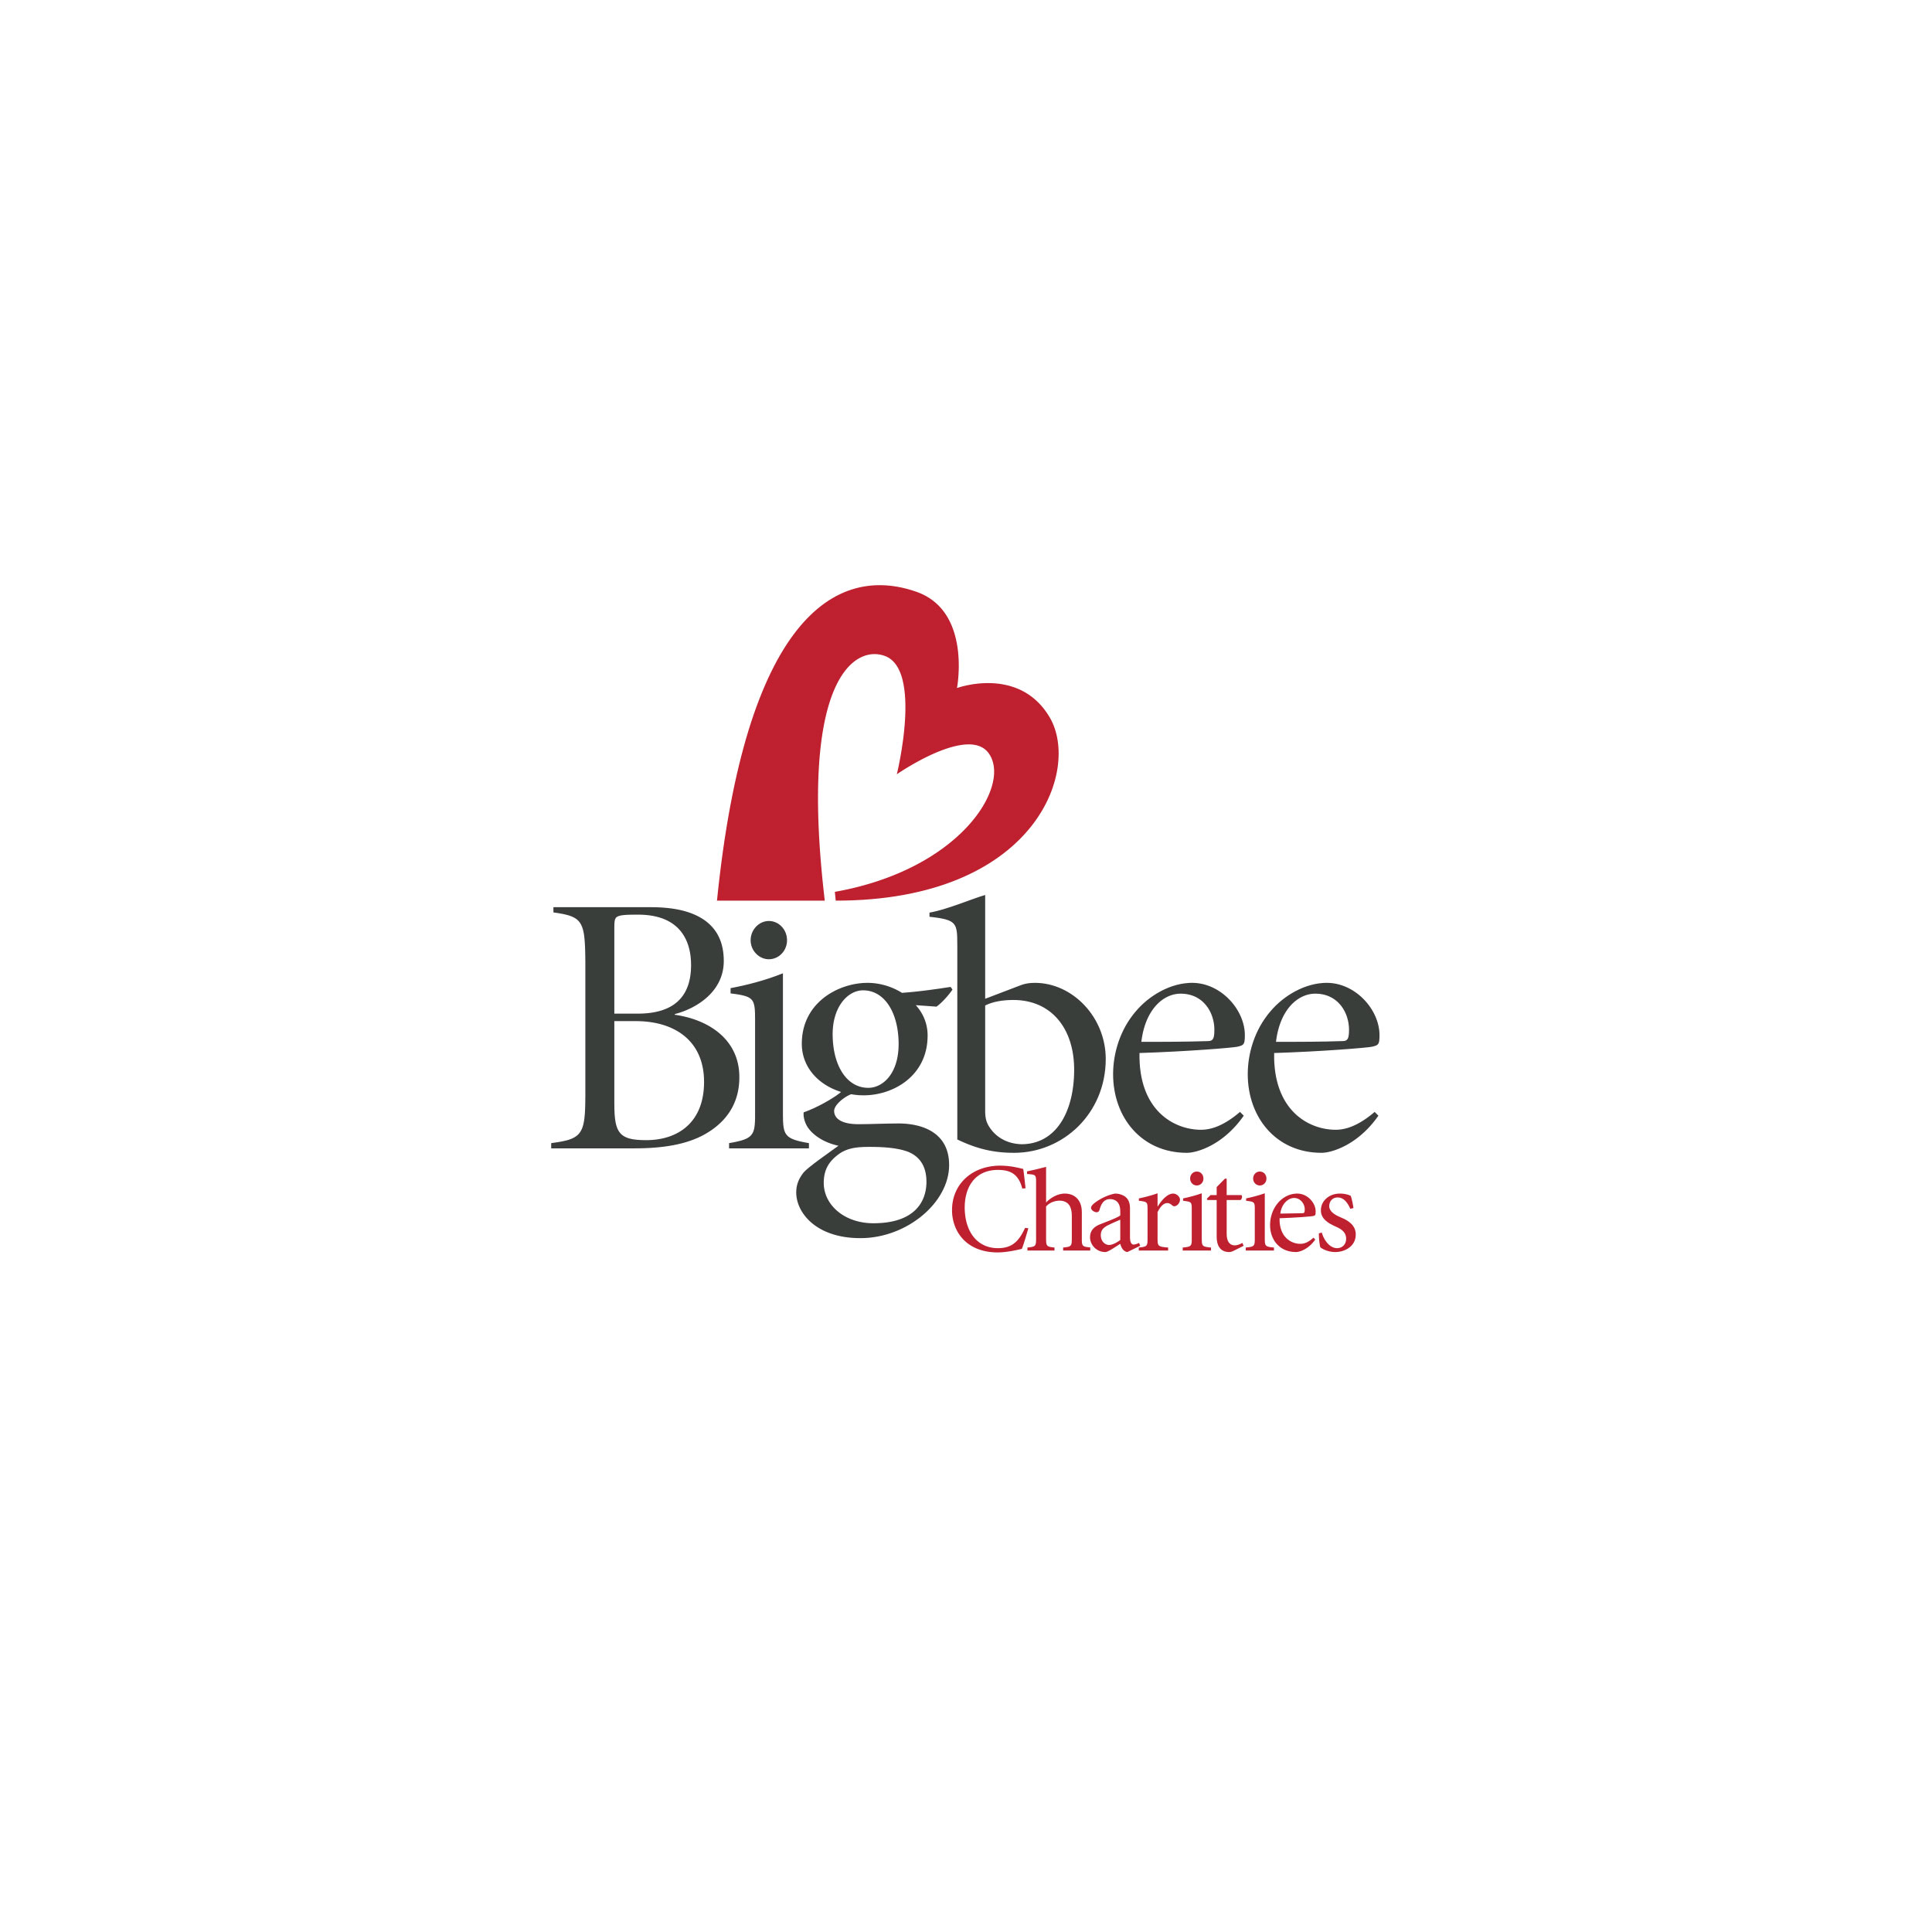 Bigbee Charities